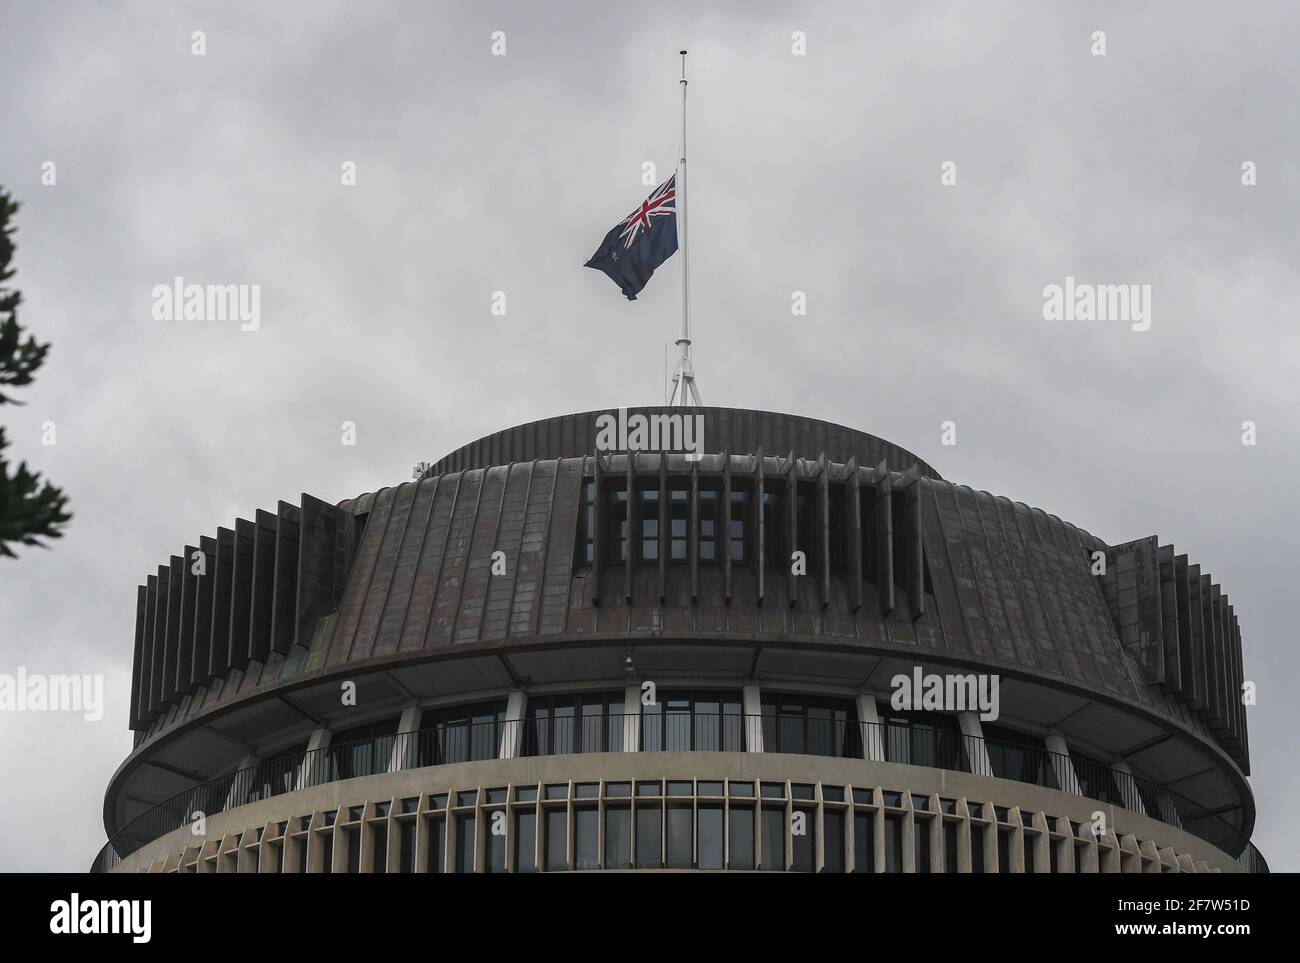 Wellington, Wellington. 10th Apr, 2021. New Zealand national flag flies at half-mast on top of Beehive, the parliament building of New Zealand, to show condolences over death of Britain's Prince Philip, in Wellington, New Zealand on April 10, 2021. Credit: Guo Lei/Xinhua/Alamy Live News Stock Photo